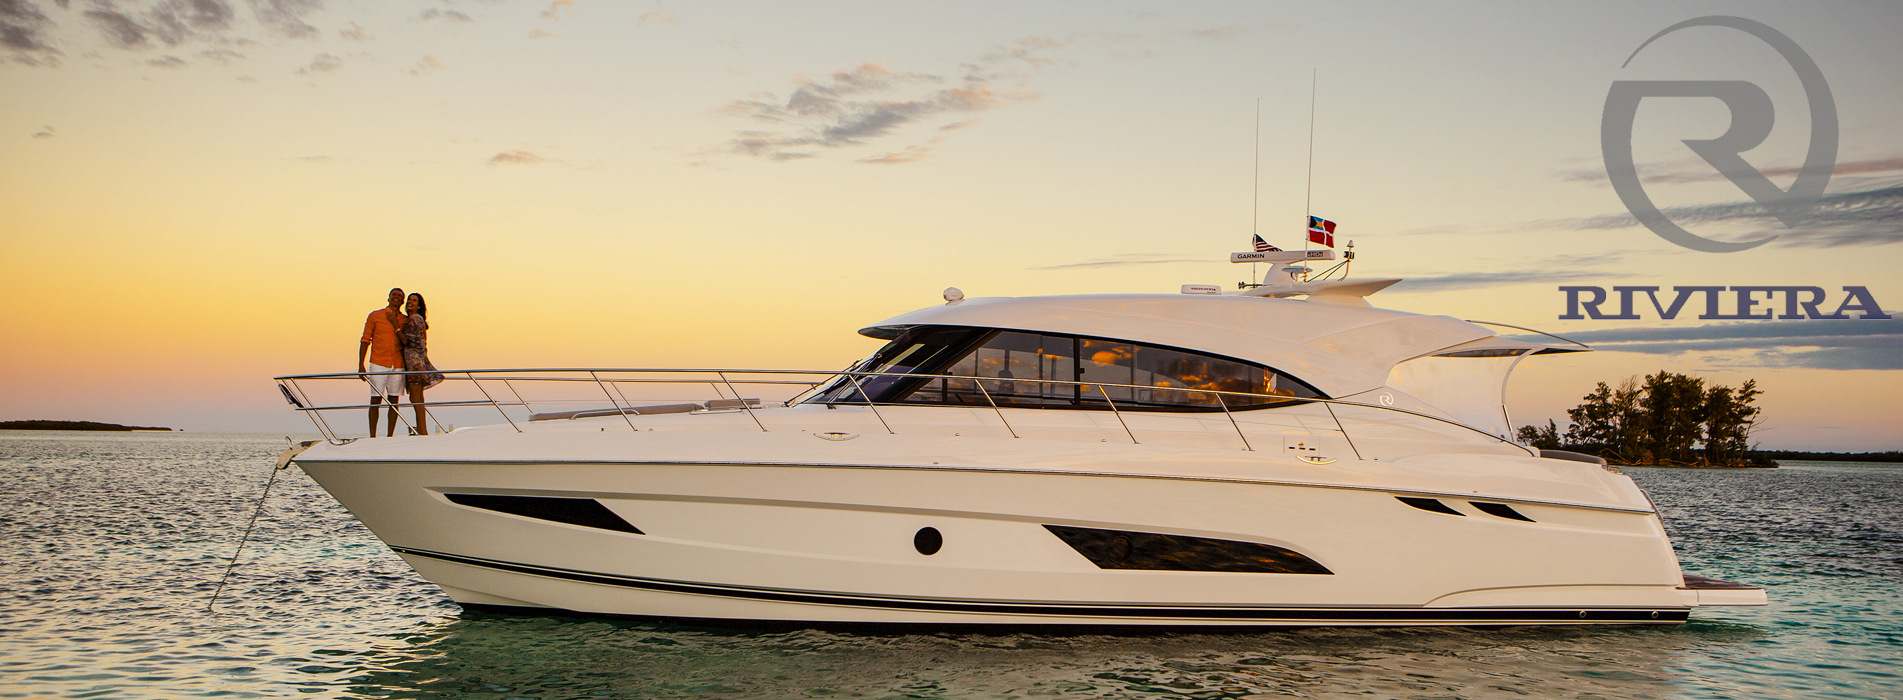 Riviera Sport Yachts For Sale